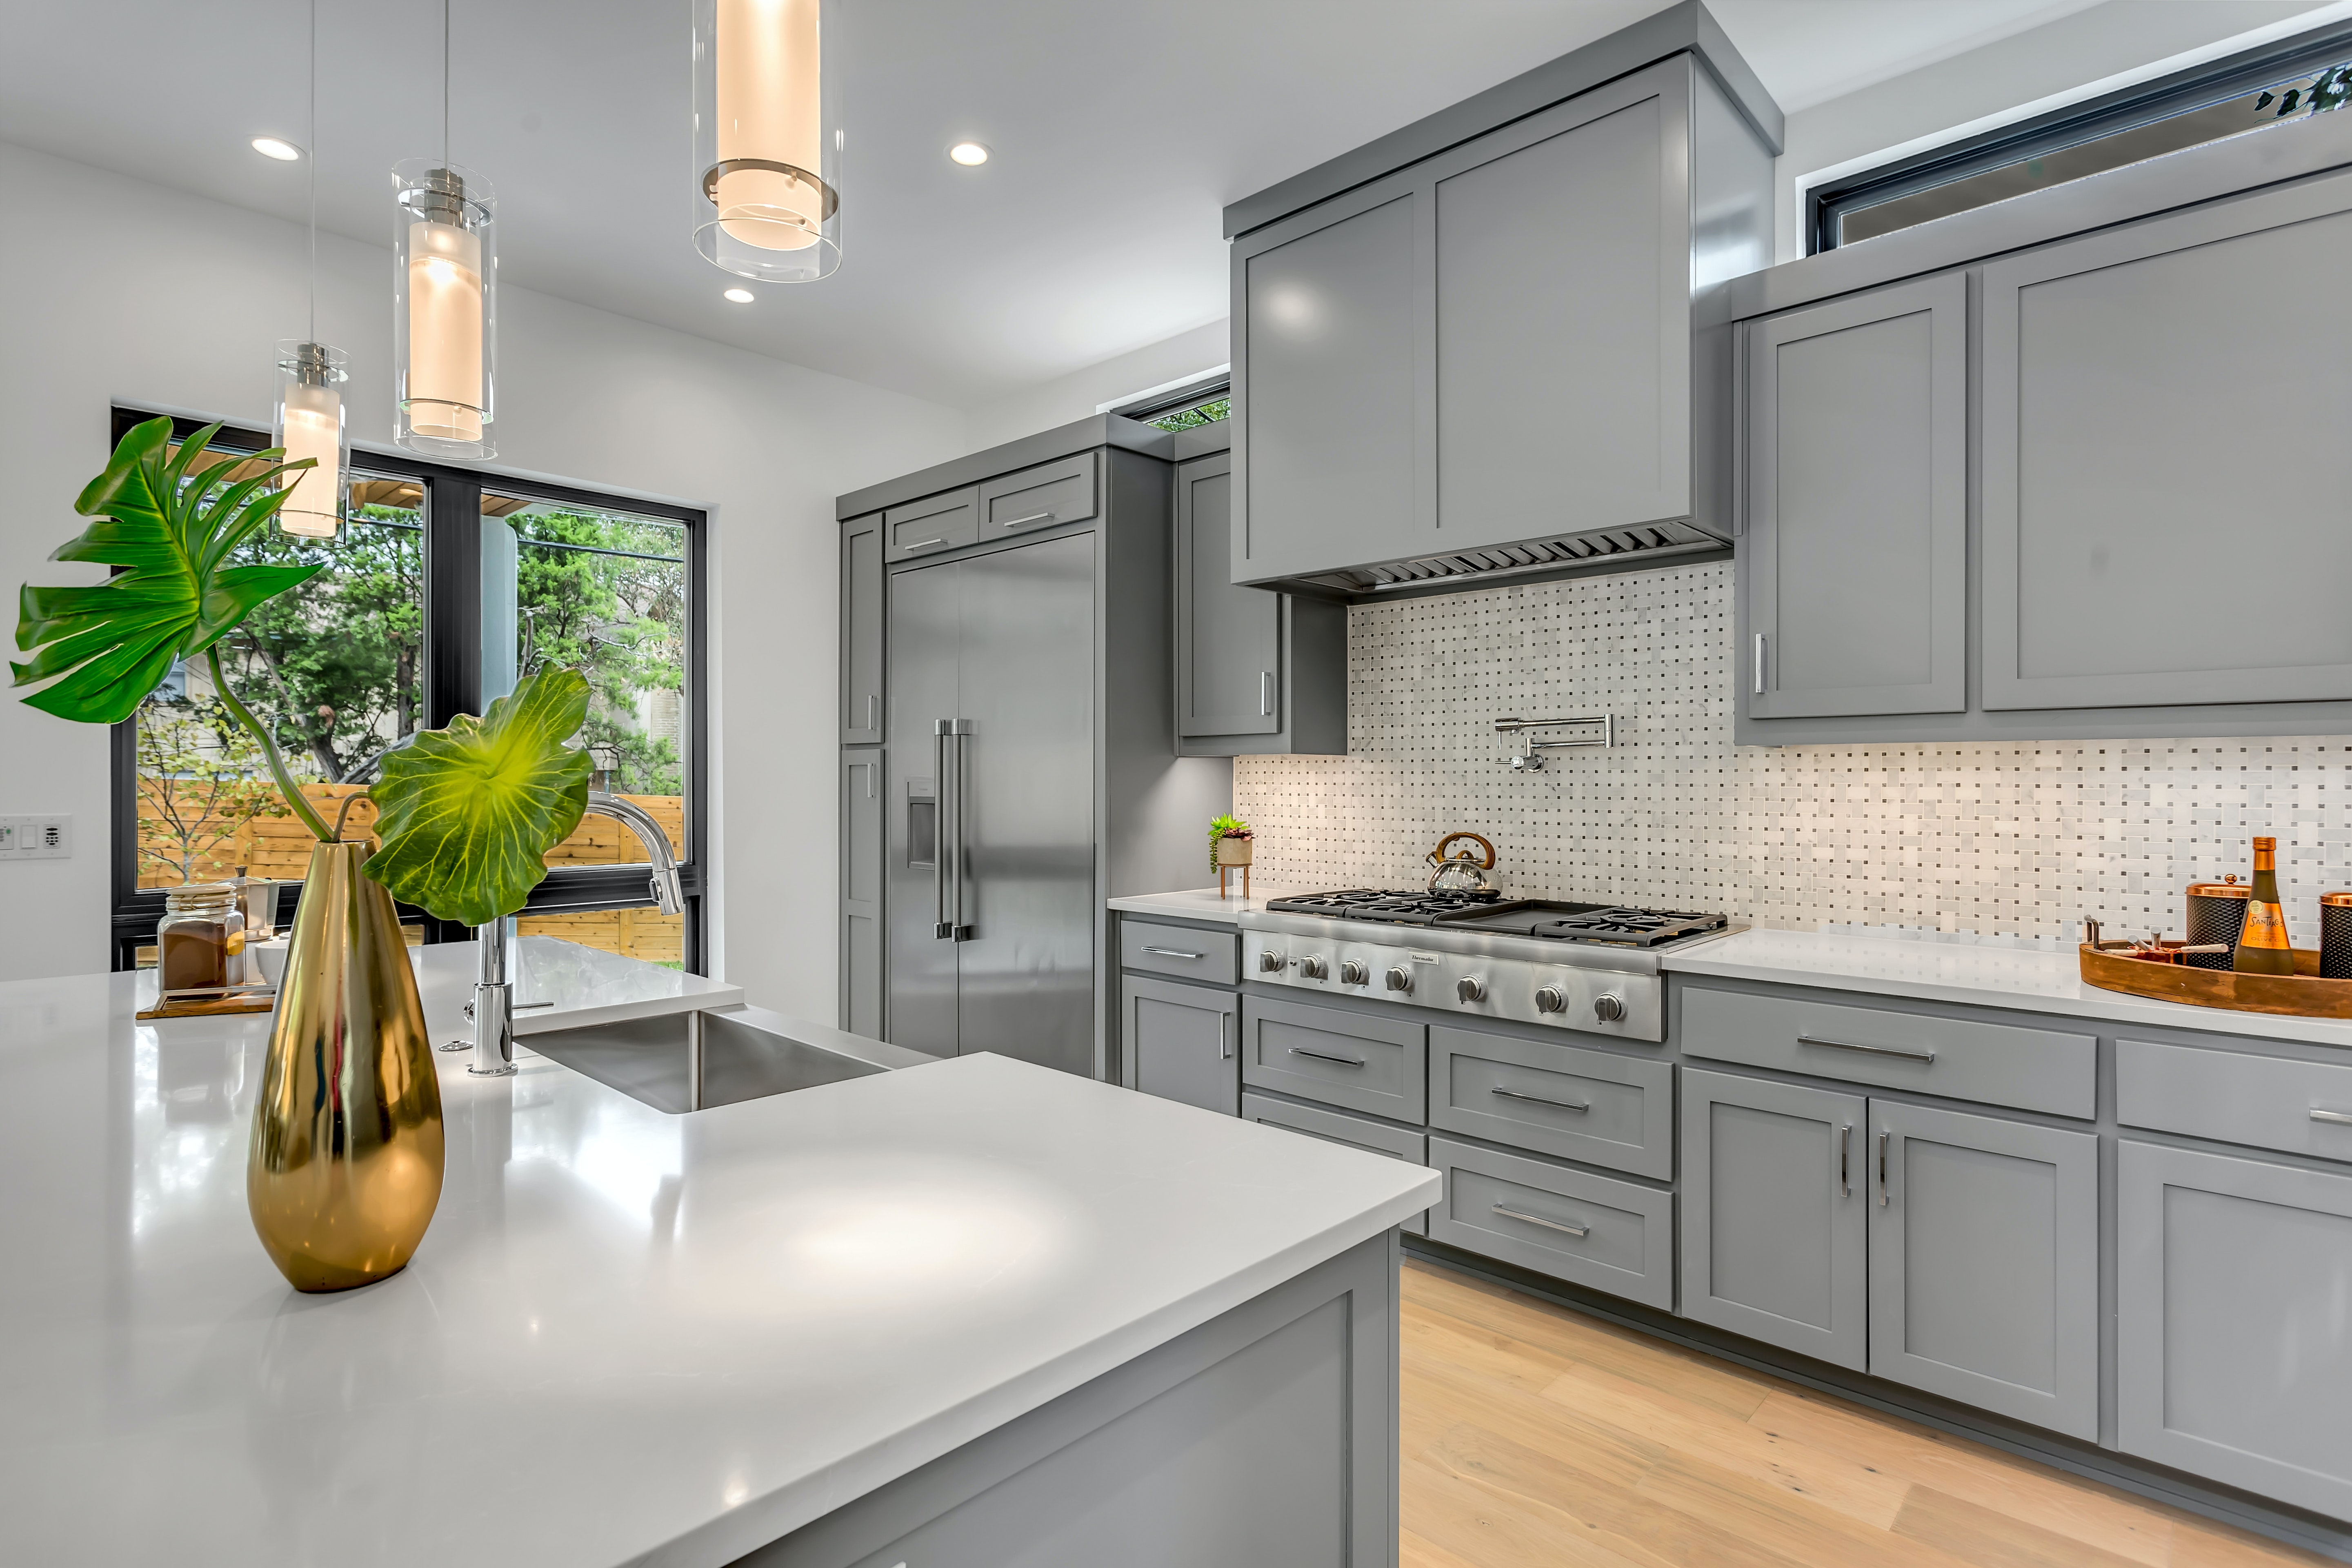 Franchise Backed Home Remodeling Company!